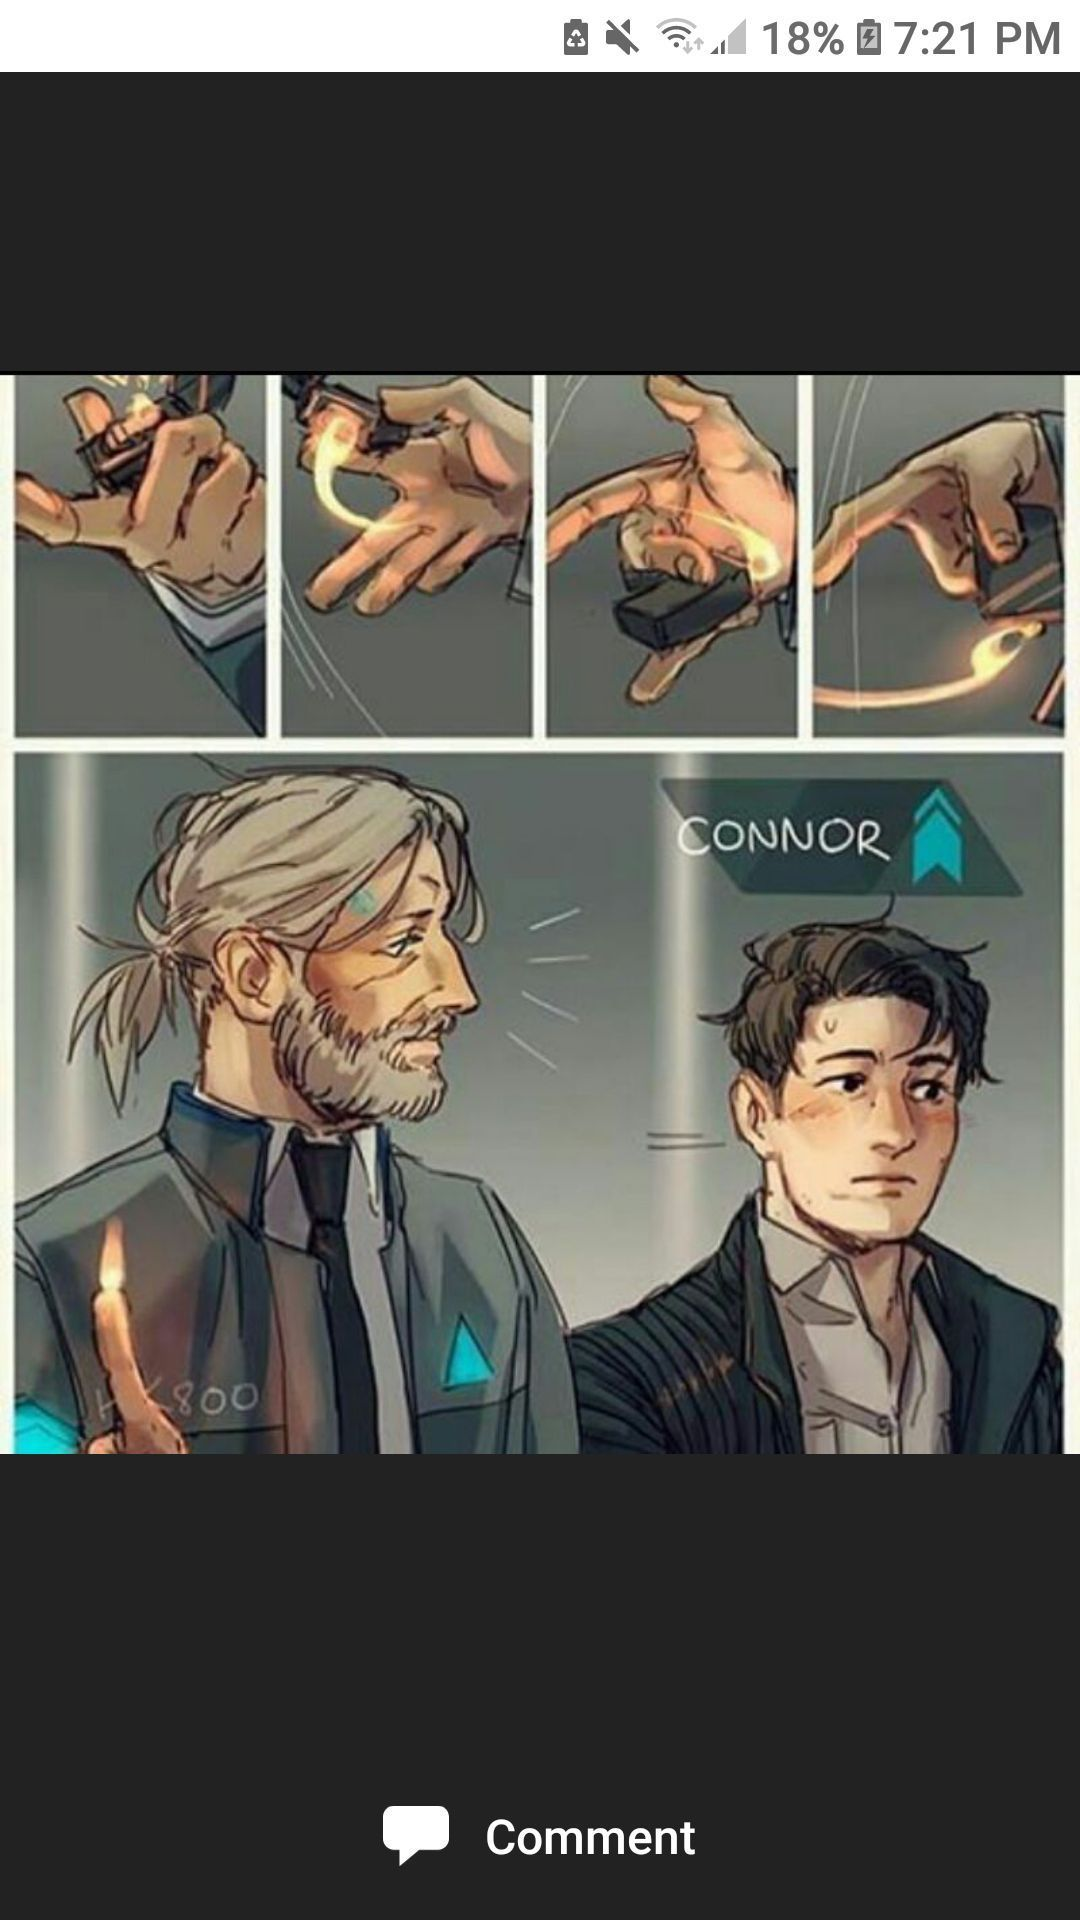 DBH Crap - Hank and Connor?